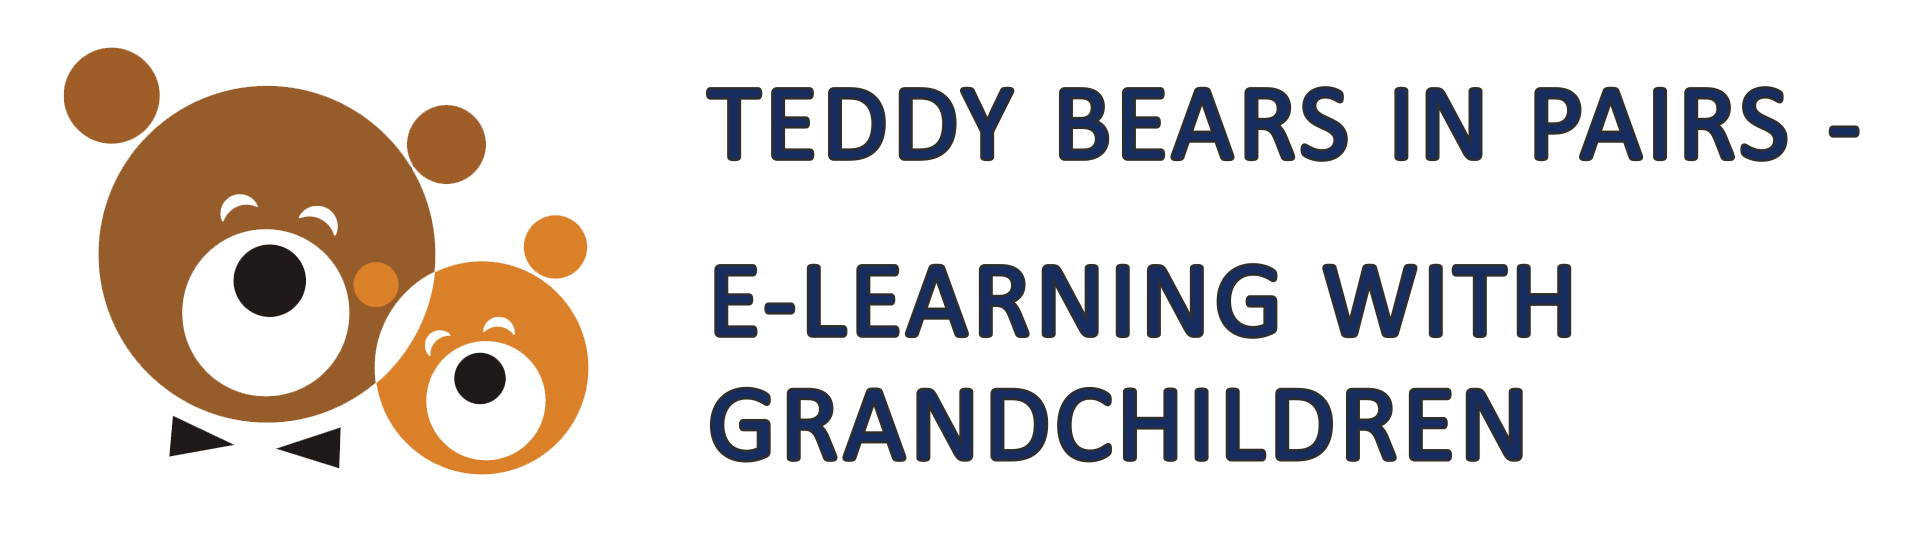 Teddy Bears In Pairs - E-Learning With Grandchildren